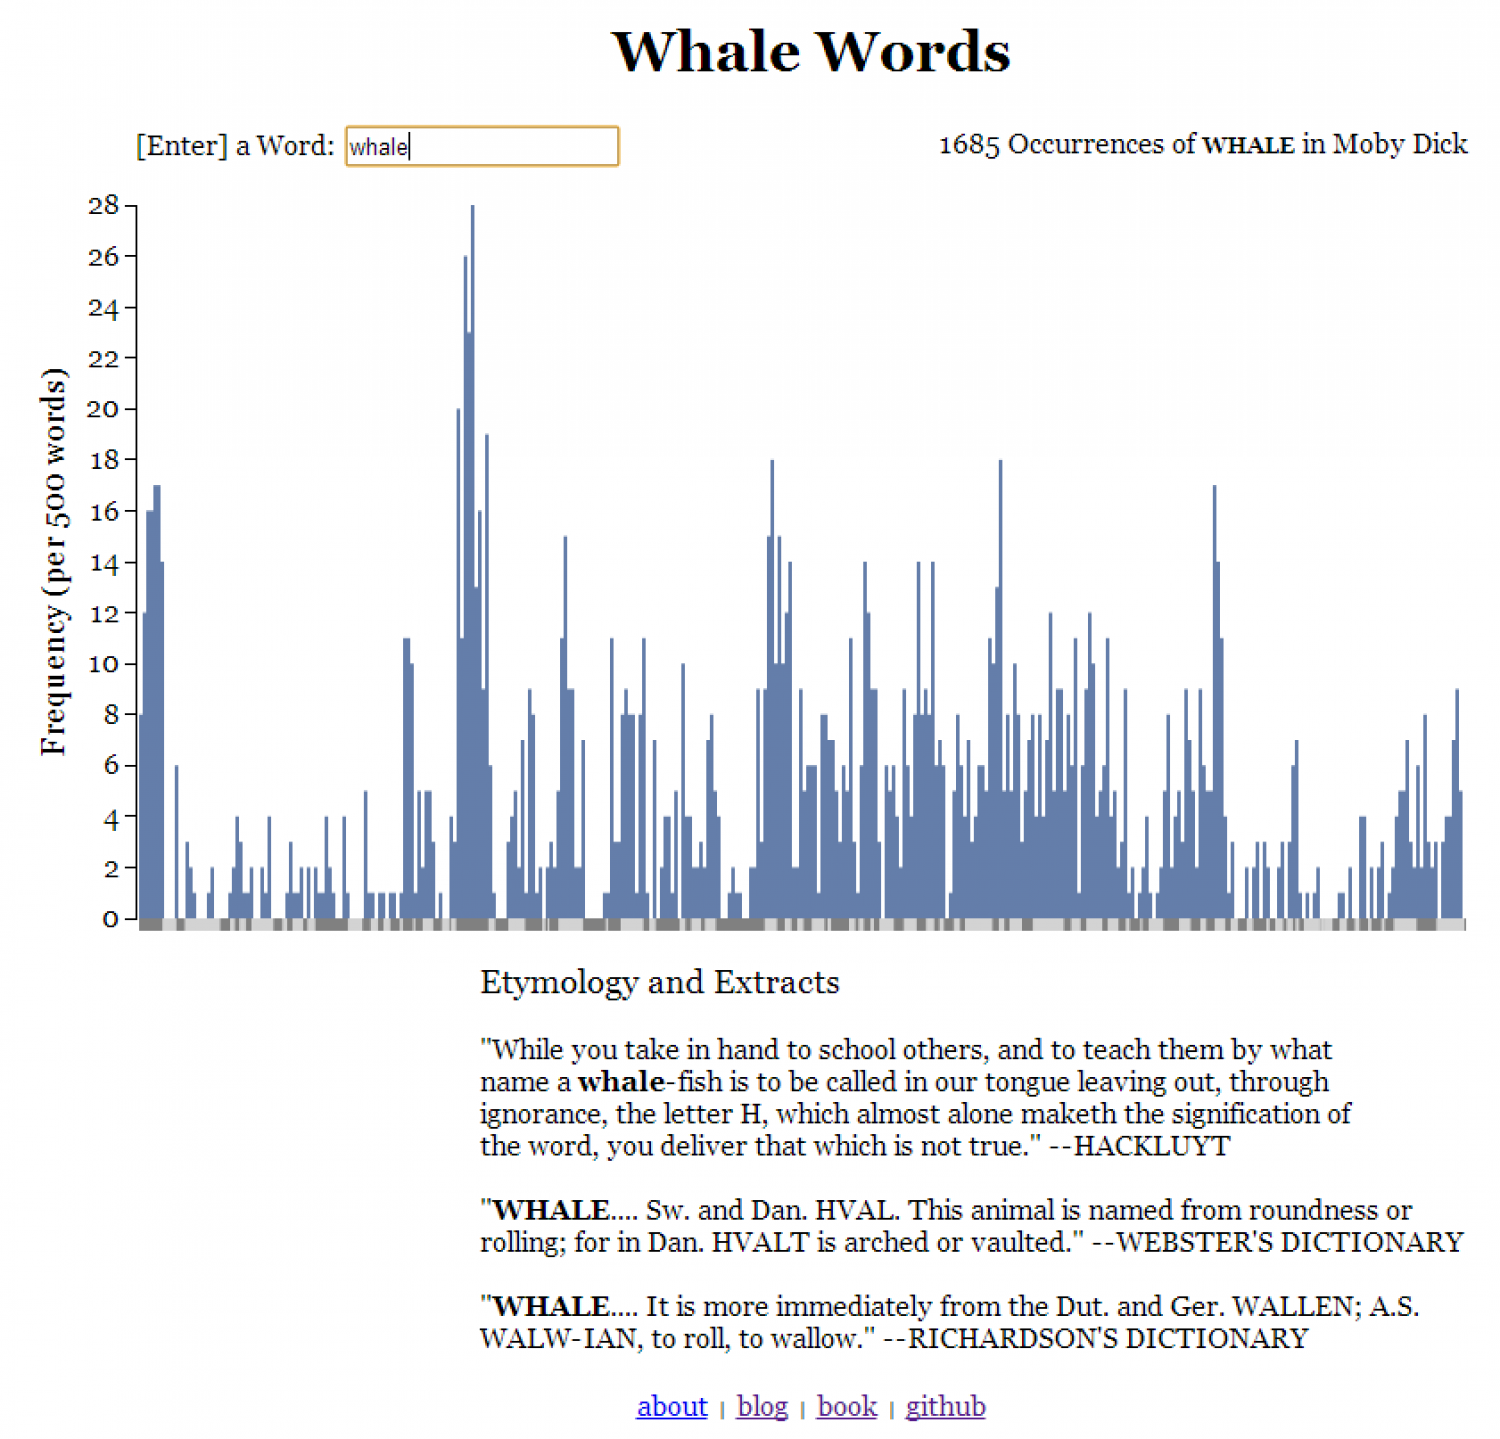 Whale Words Infographic